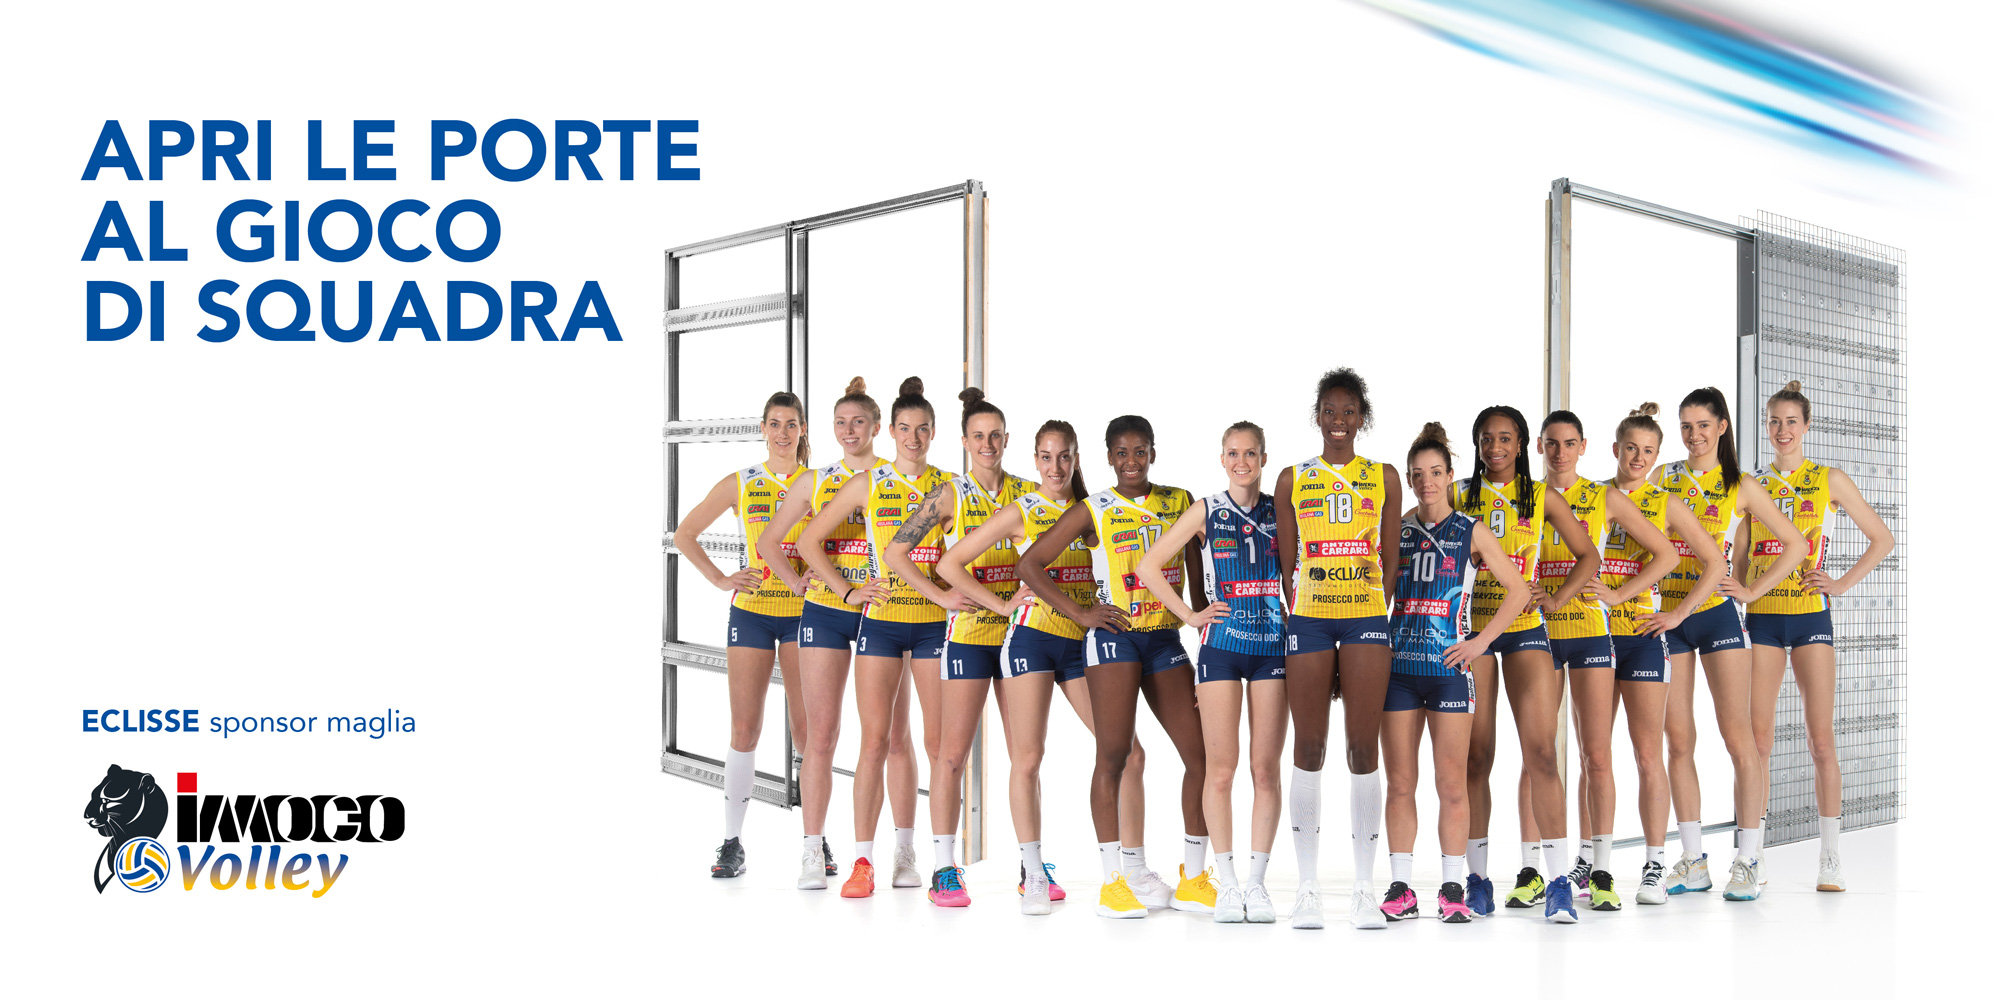 Imoco Volley - Le Pantere